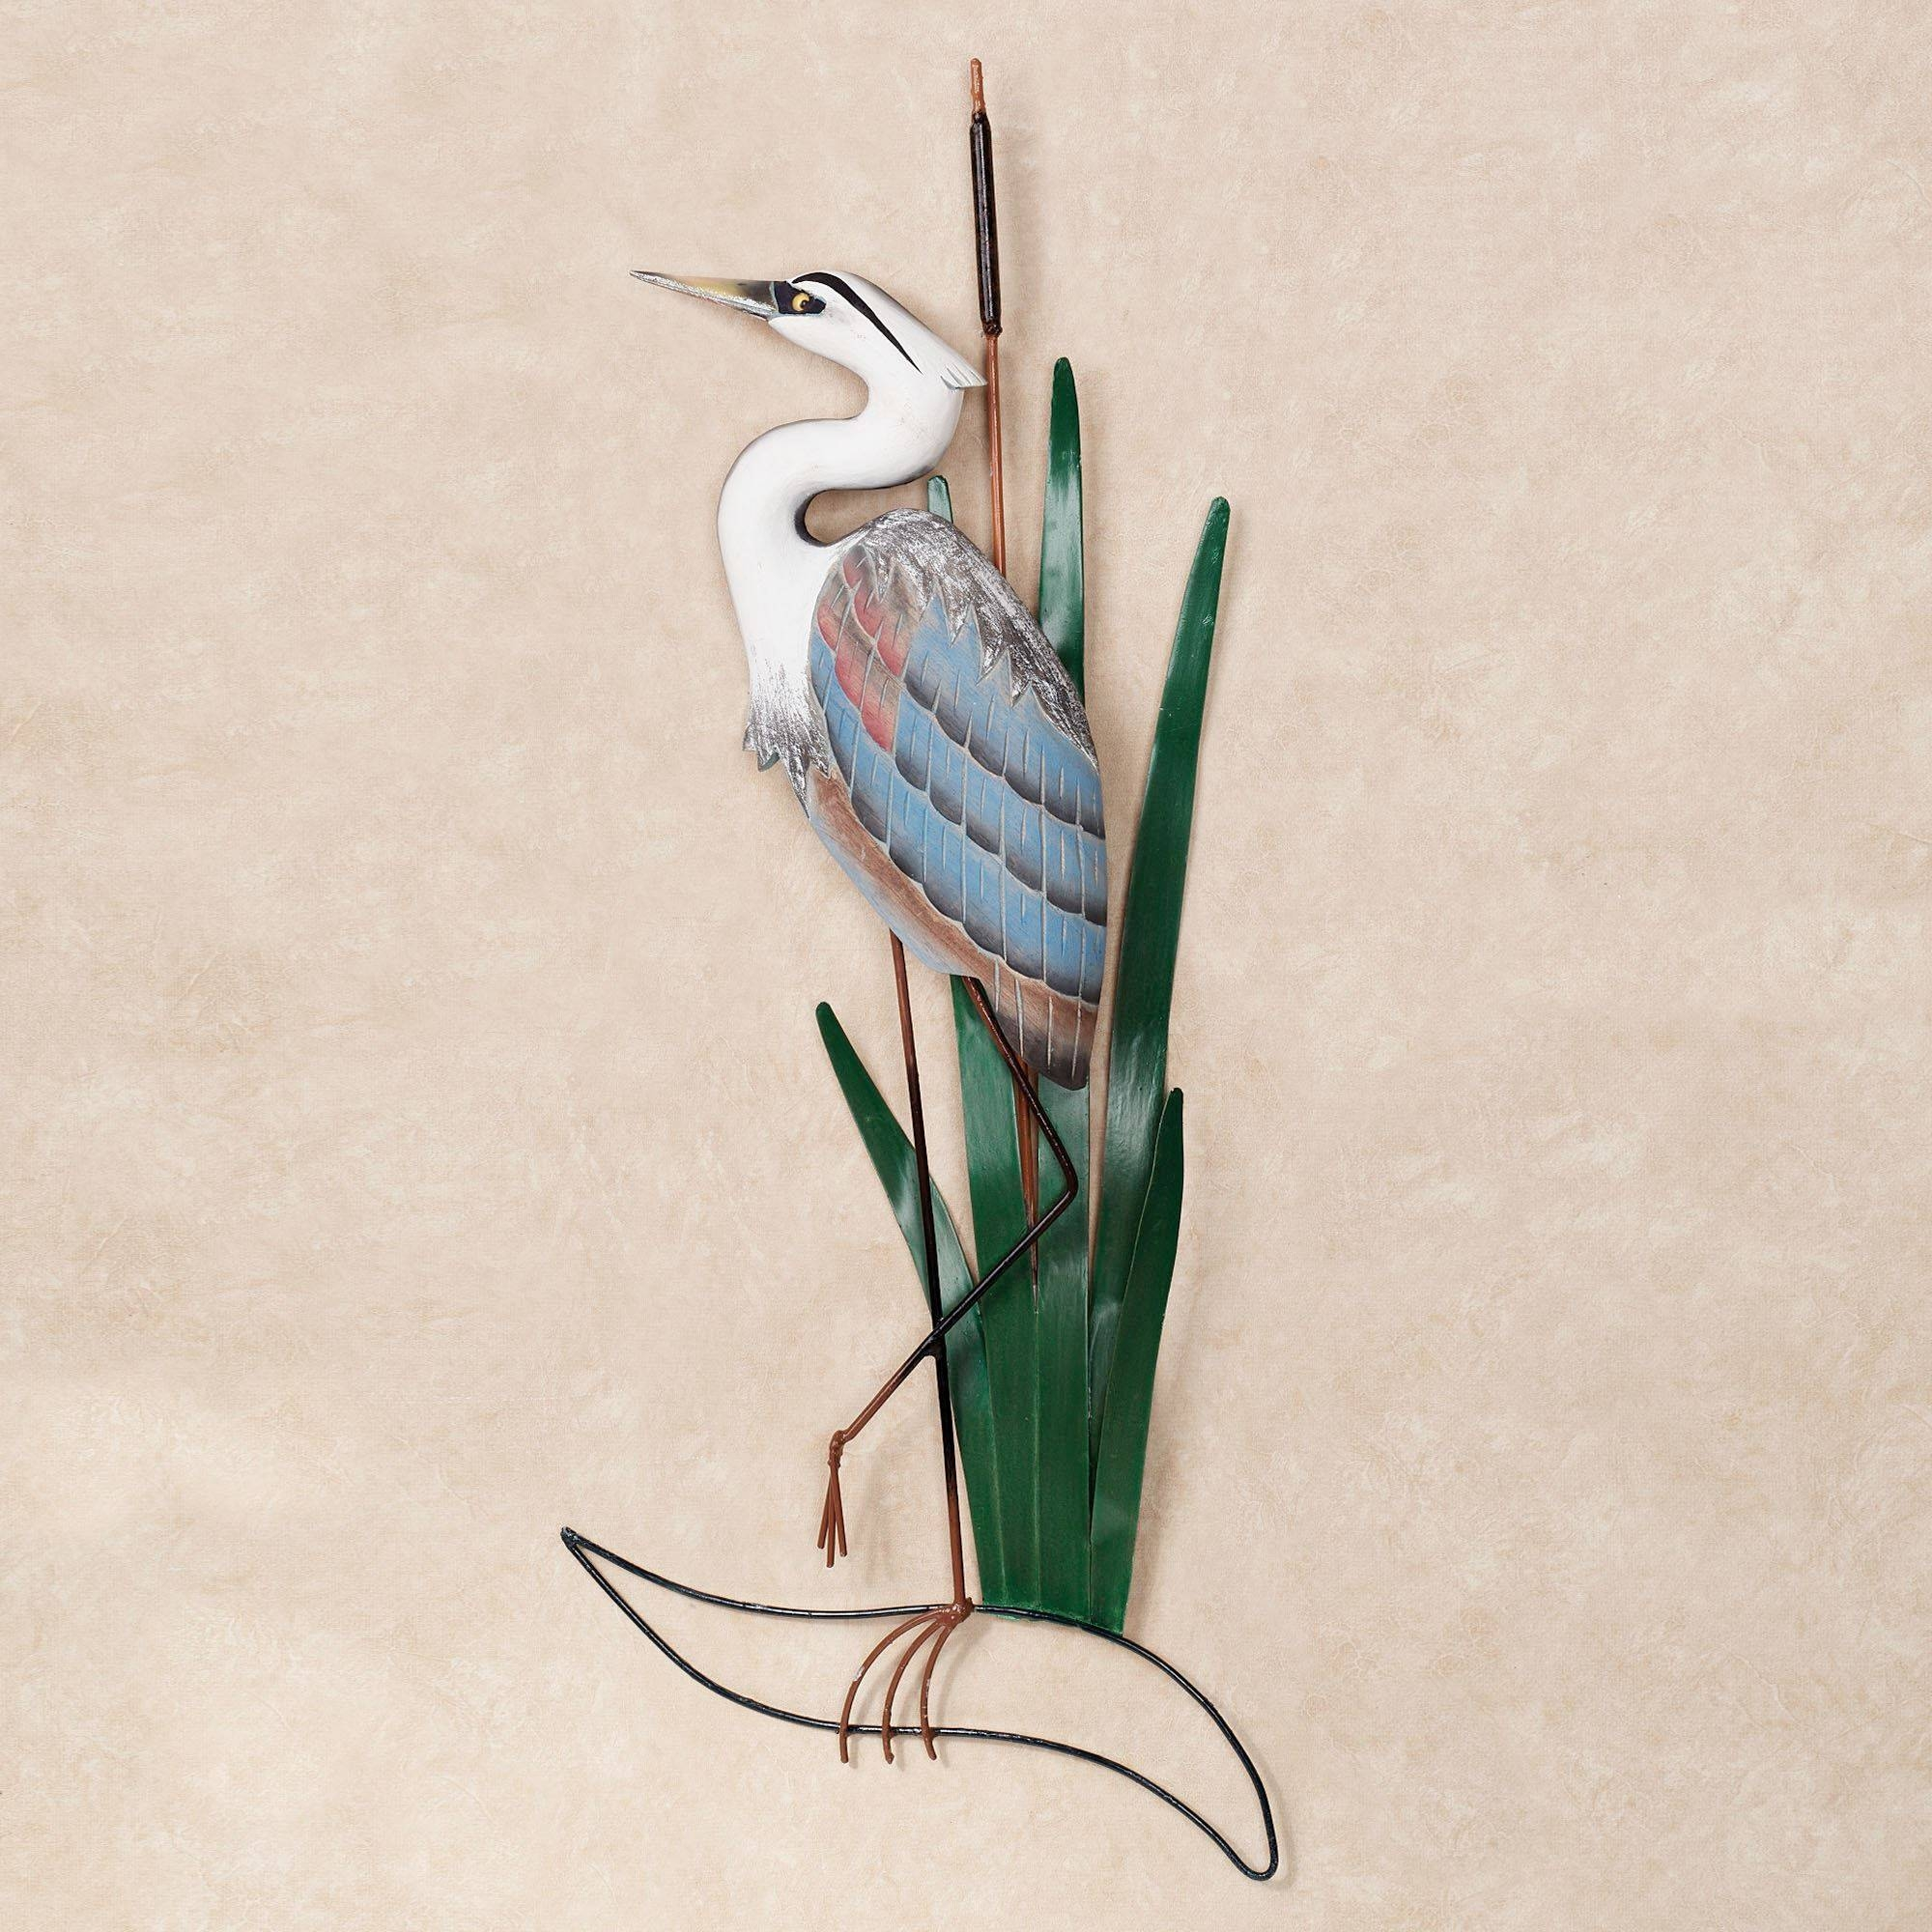 Blue Heron Head Up Wall Art Intended For Most Current Blue Heron Metal Wall Art (View 15 of 20)